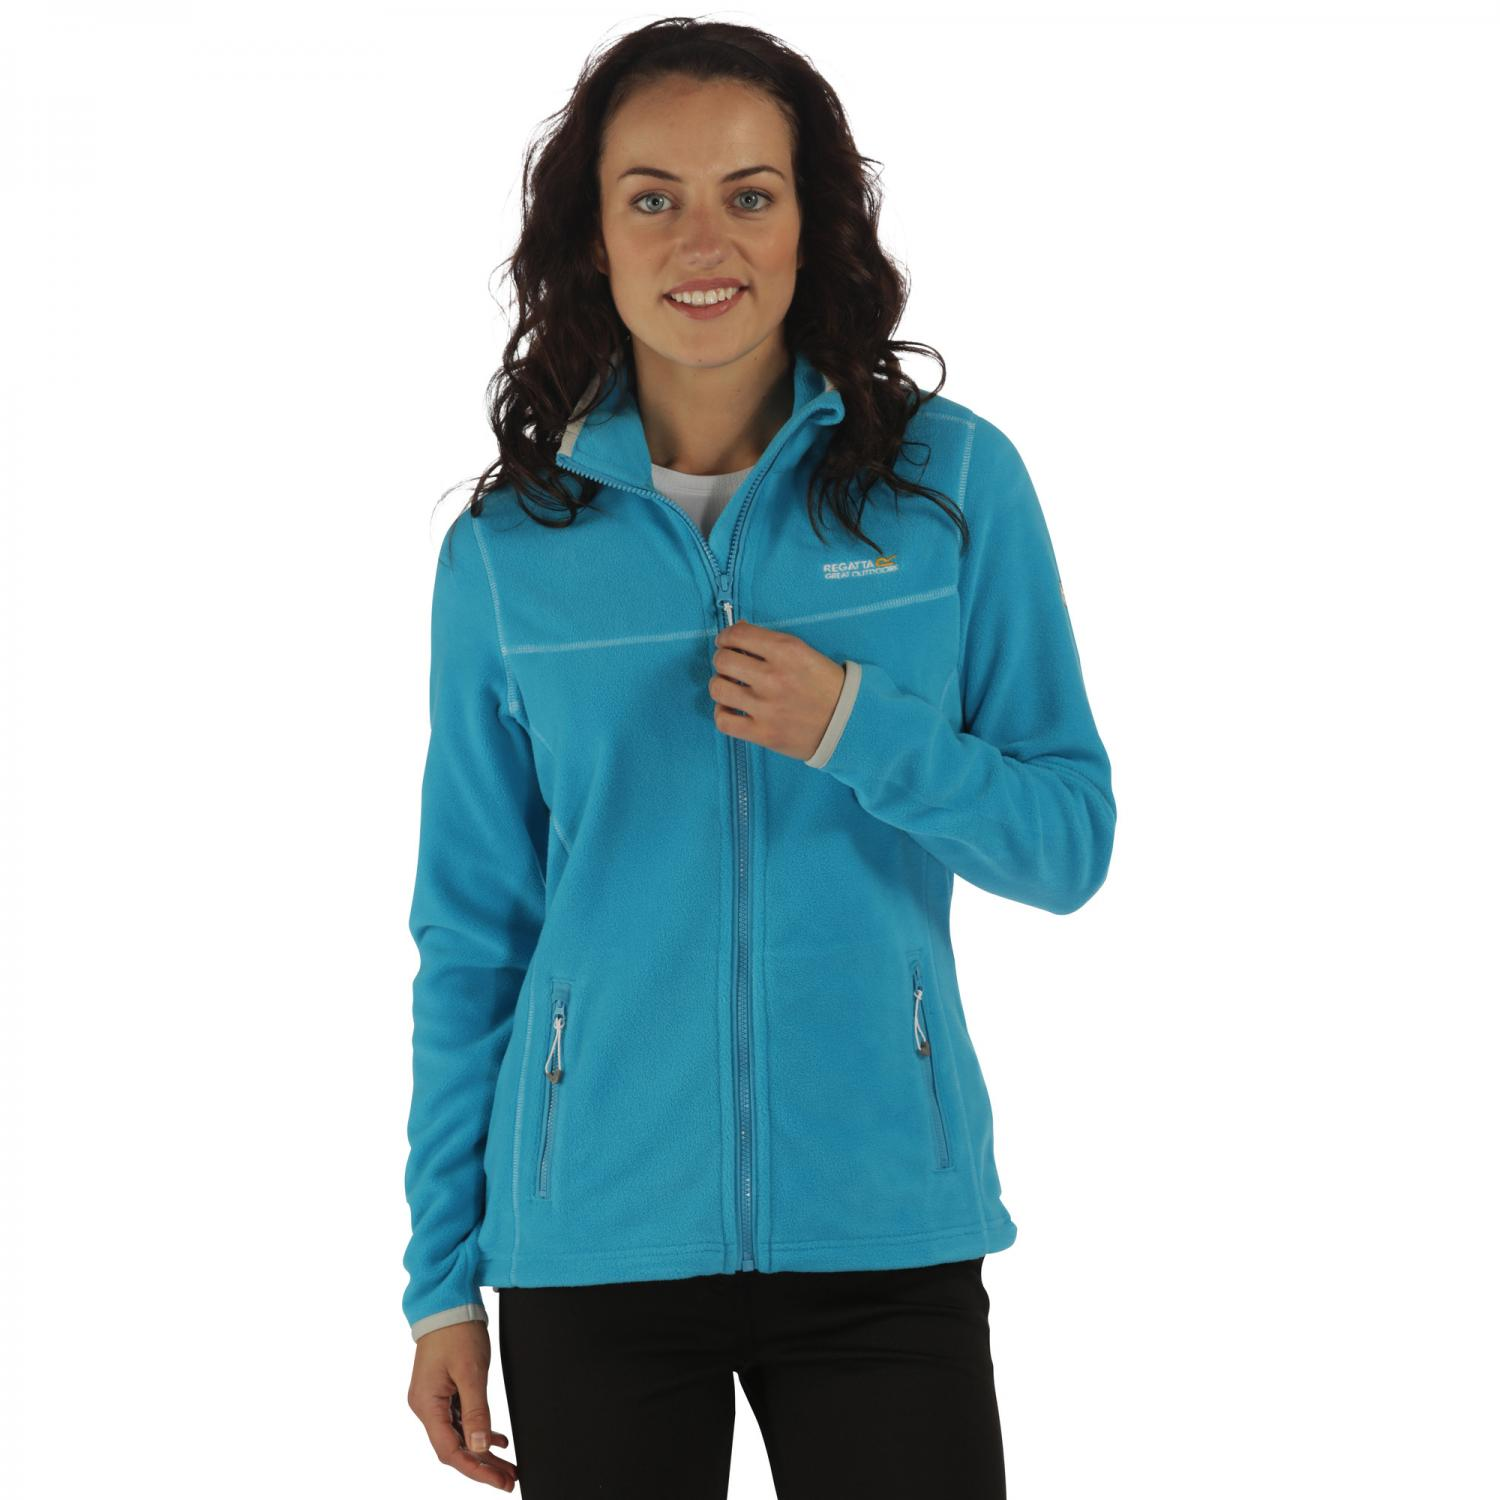 Floreo II Fleece Fluro Blue